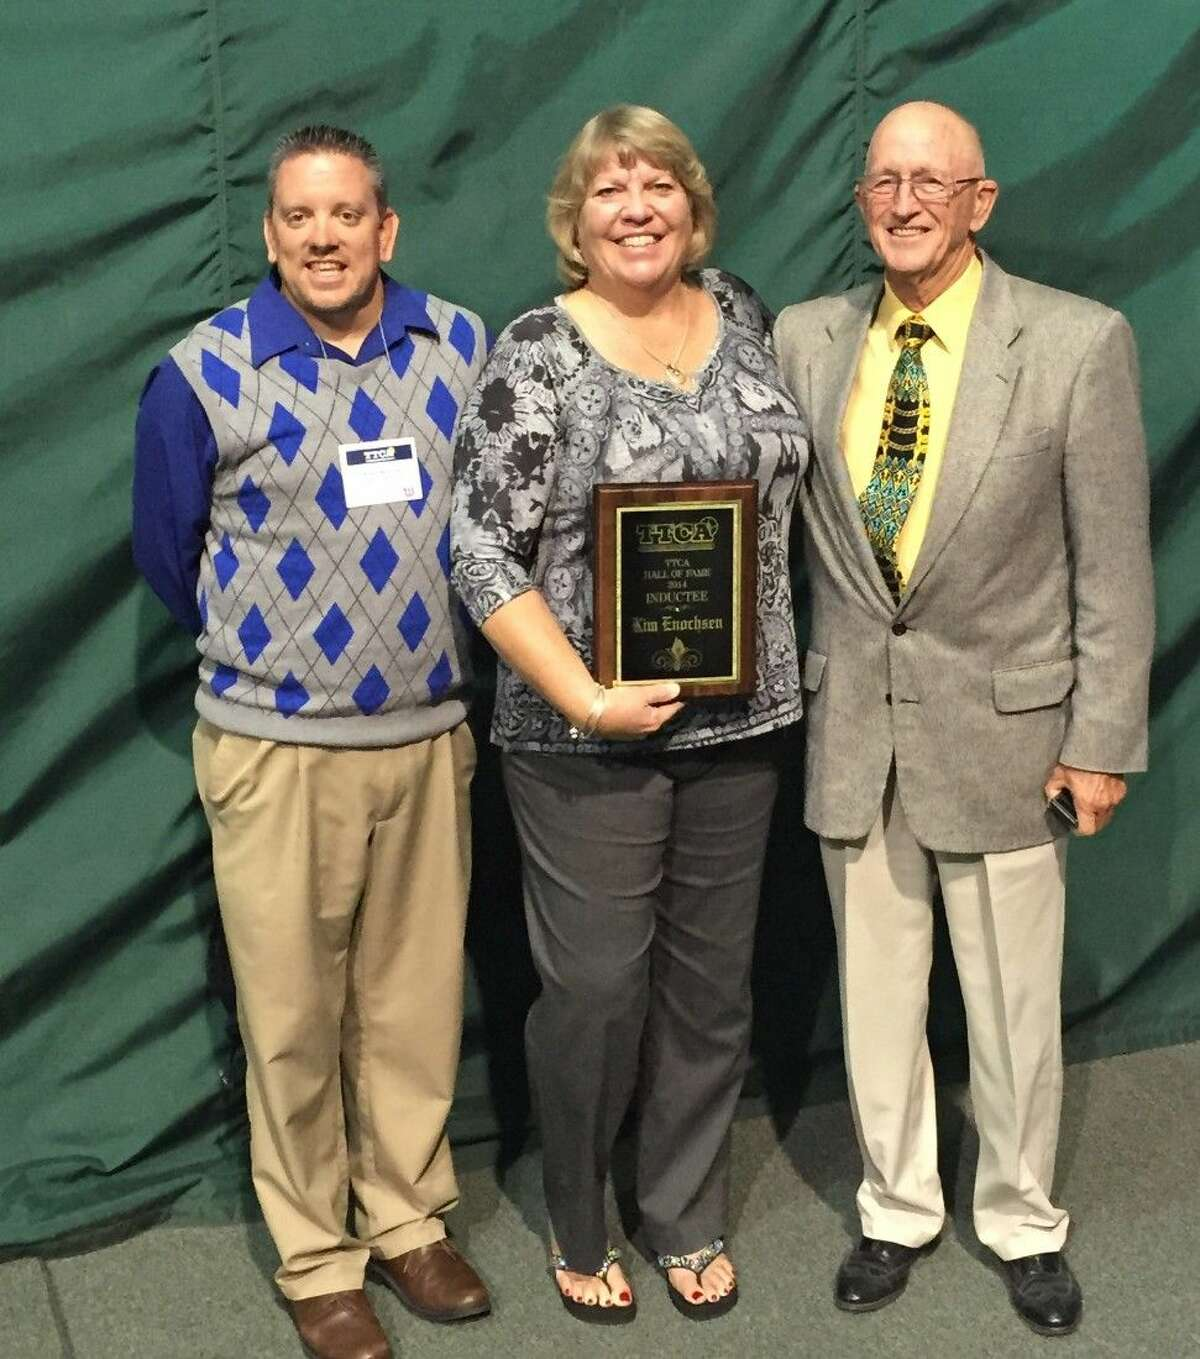 Texas Tennis Coaches Association Hall of Fame Induction. Pictured left to right, Kingwood High School Tennis Coach Kevin McElroy, Coach Kim Enocksen and Coach Jerry Franklin.